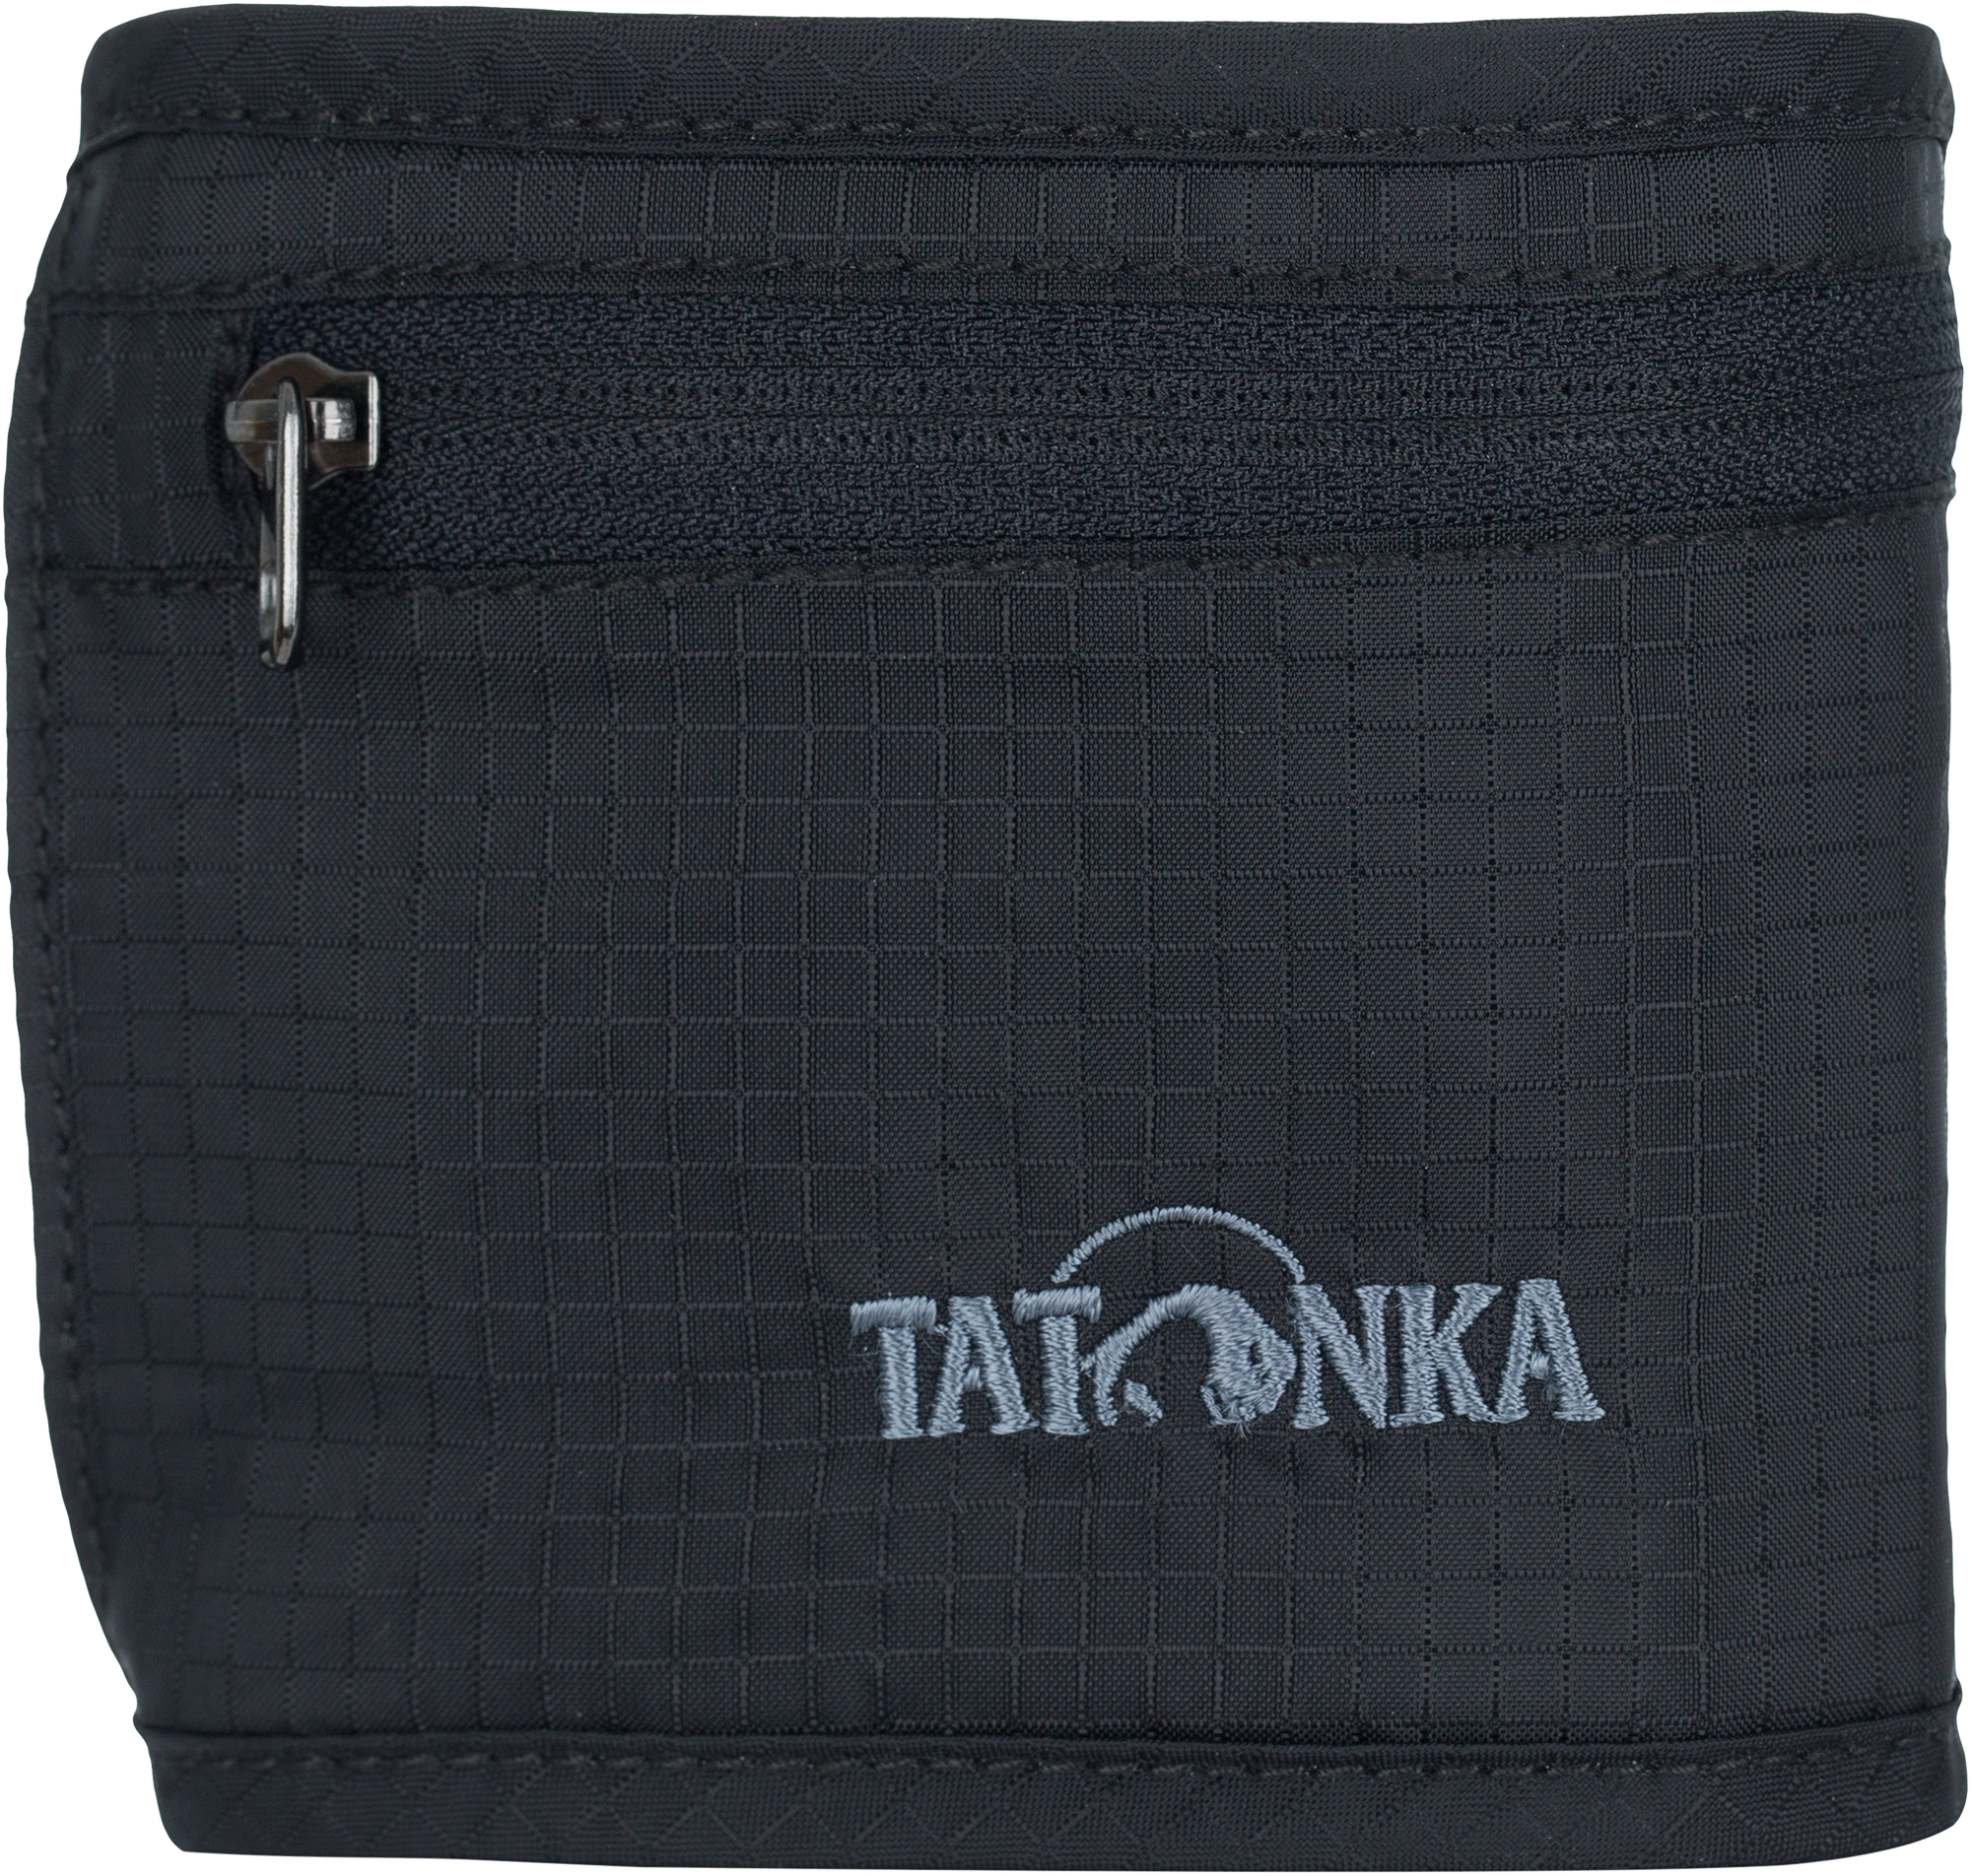 Tatonka Кошелек Tatonka SKIN WRIST WALL tatonka sherpa dome plus